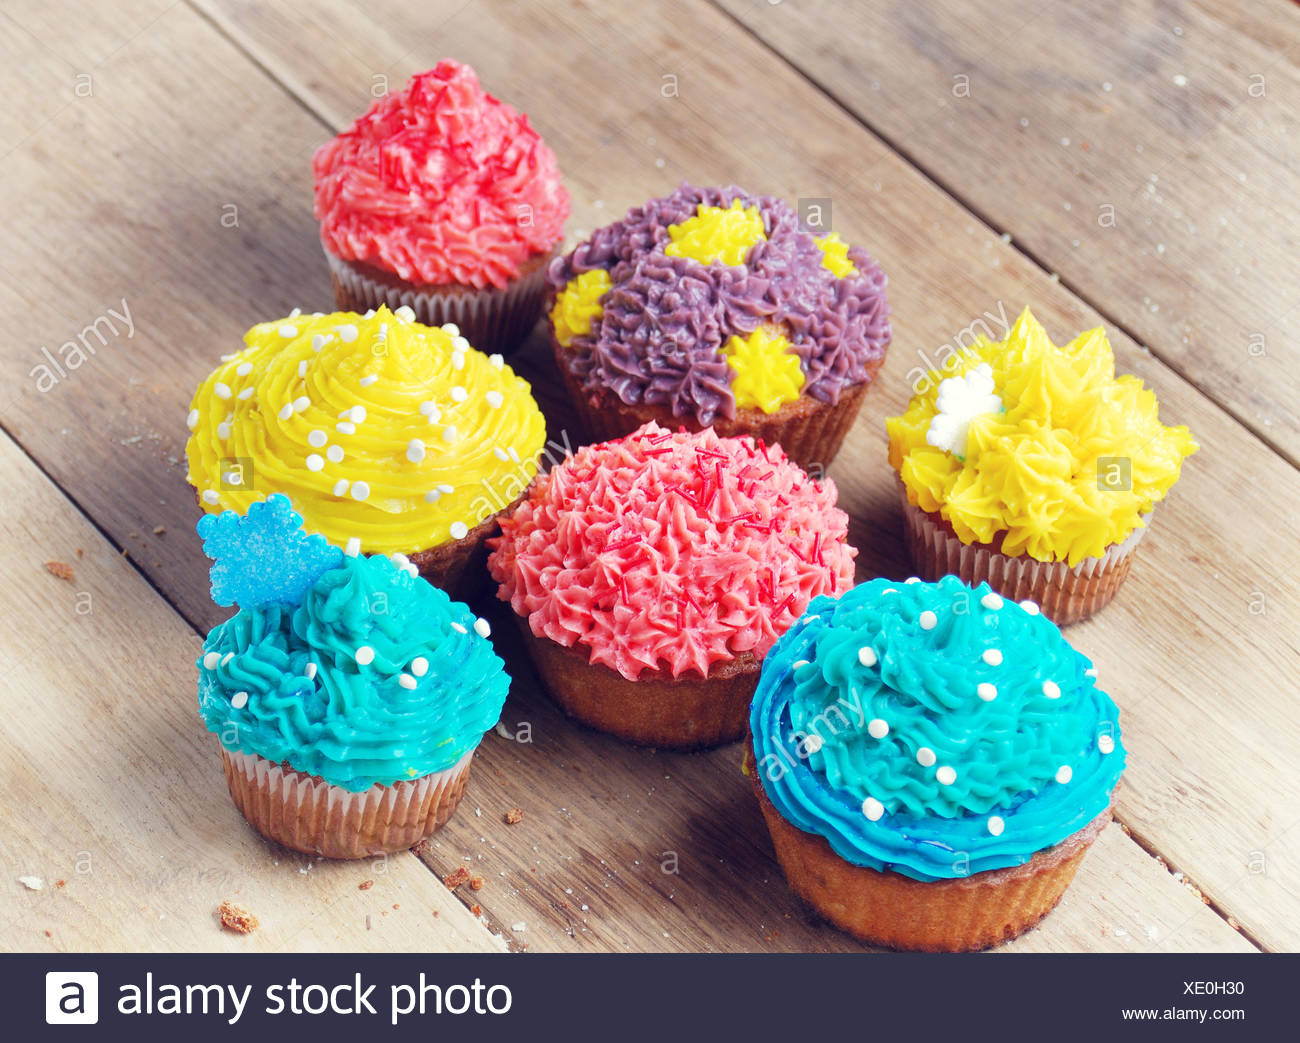 Pleasing Sweet Easter Christmas Birthday Cakes Stock Photo 283984484 Alamy Personalised Birthday Cards Veneteletsinfo